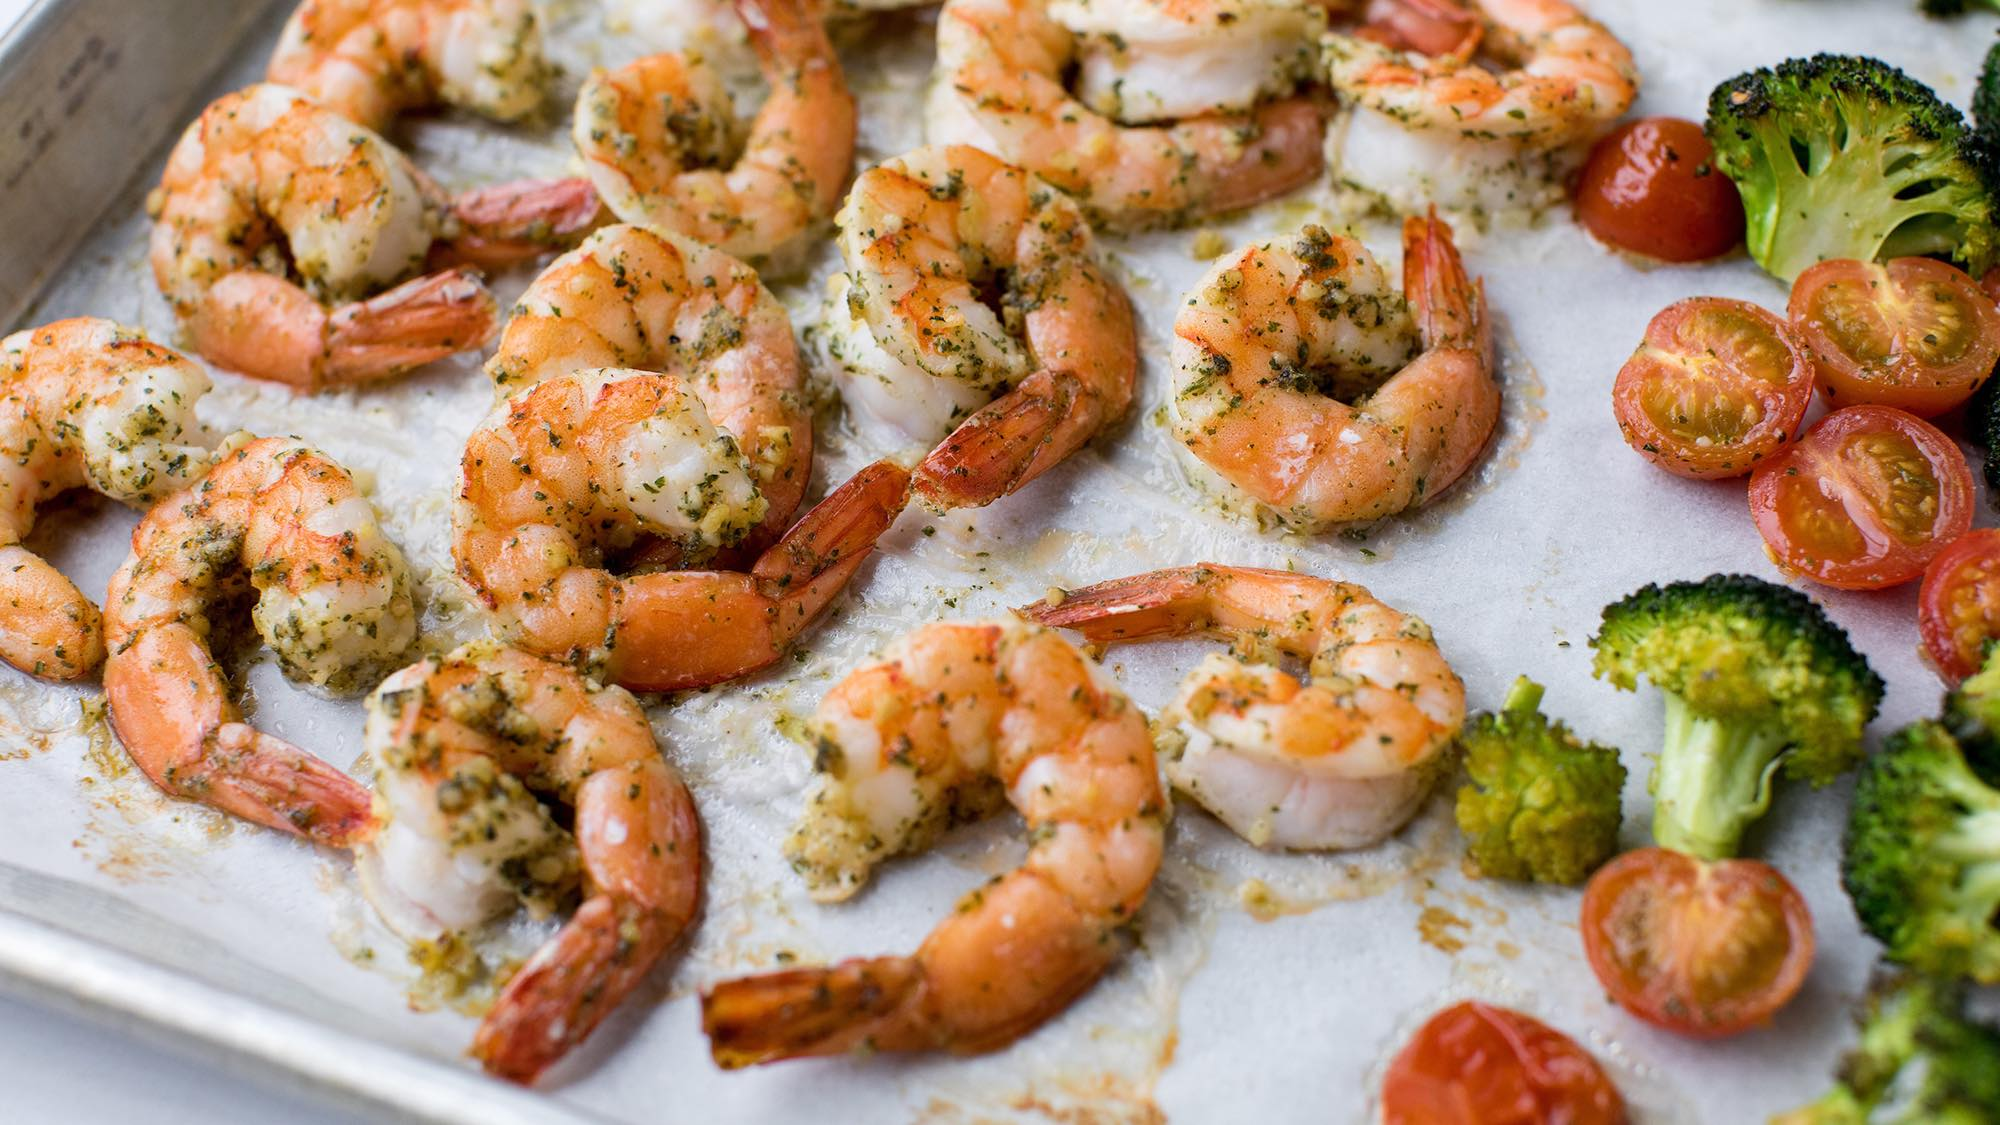 McCormick Sheet Pan Shrimp Scampi